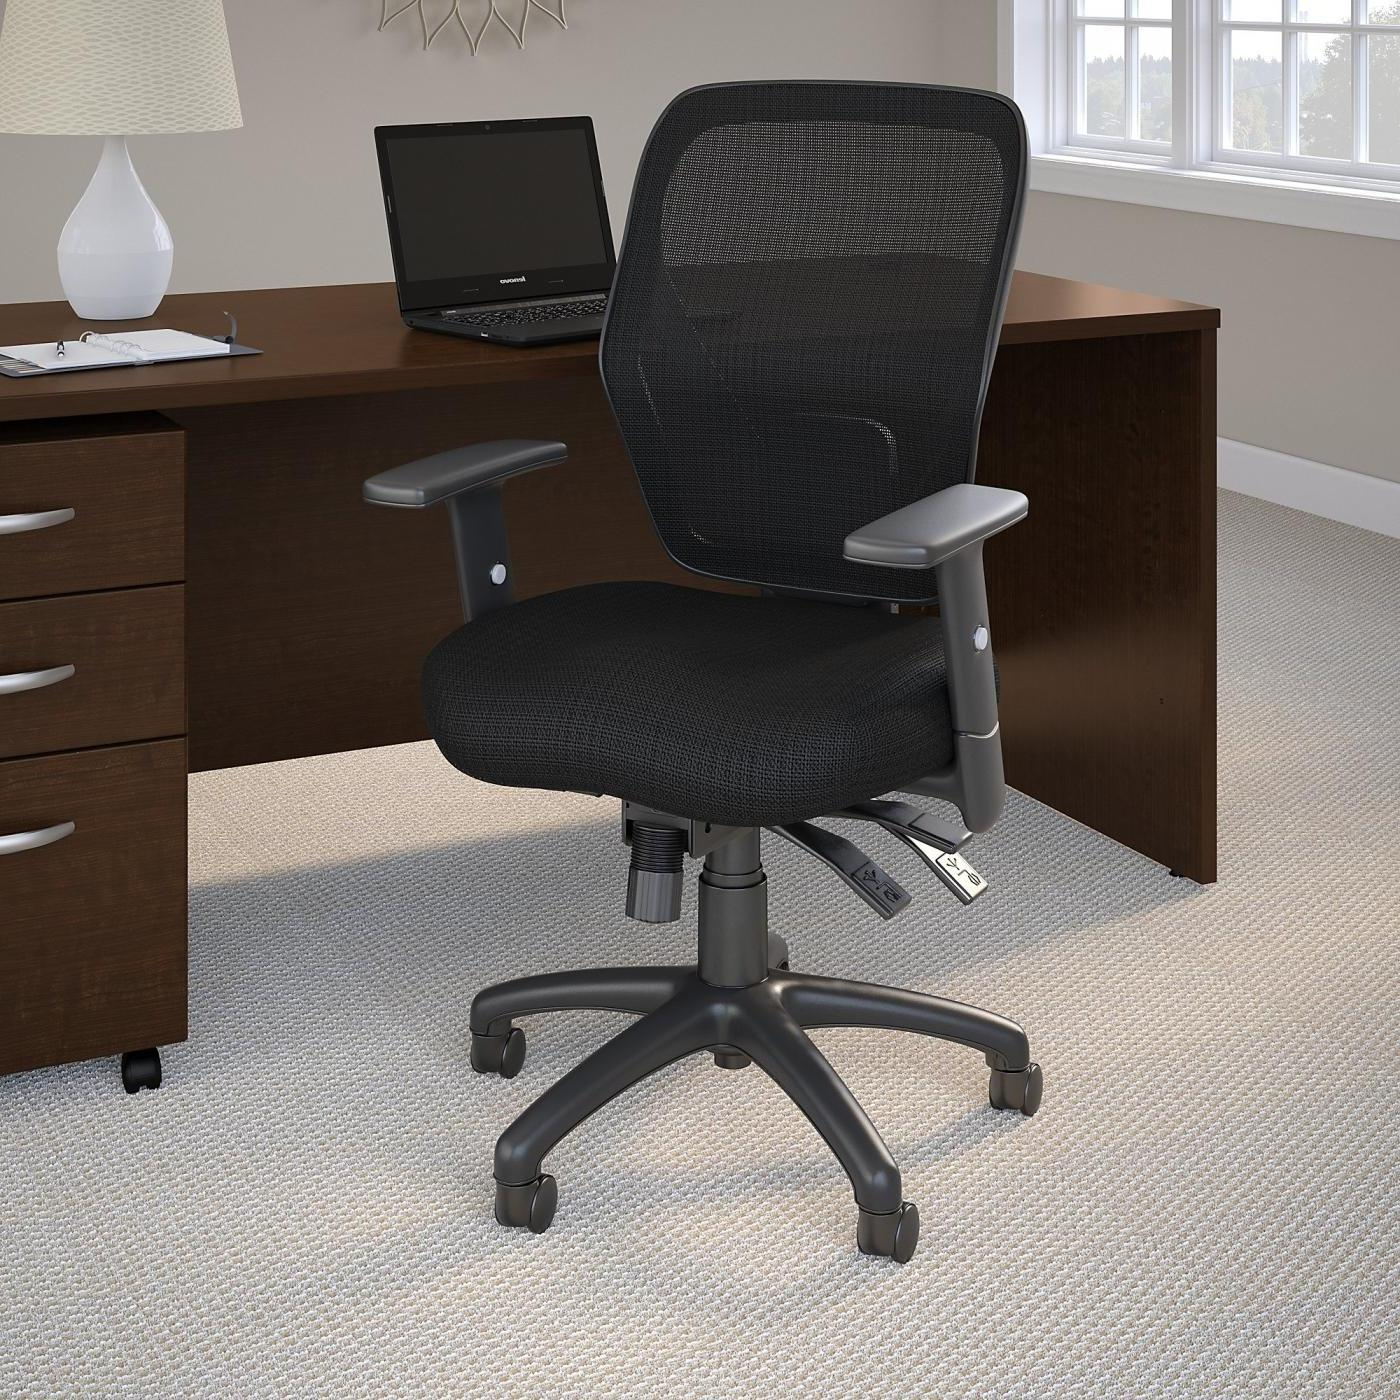 Ch1401blf 03 Bush Business Furniture Bbf Corporate Mid